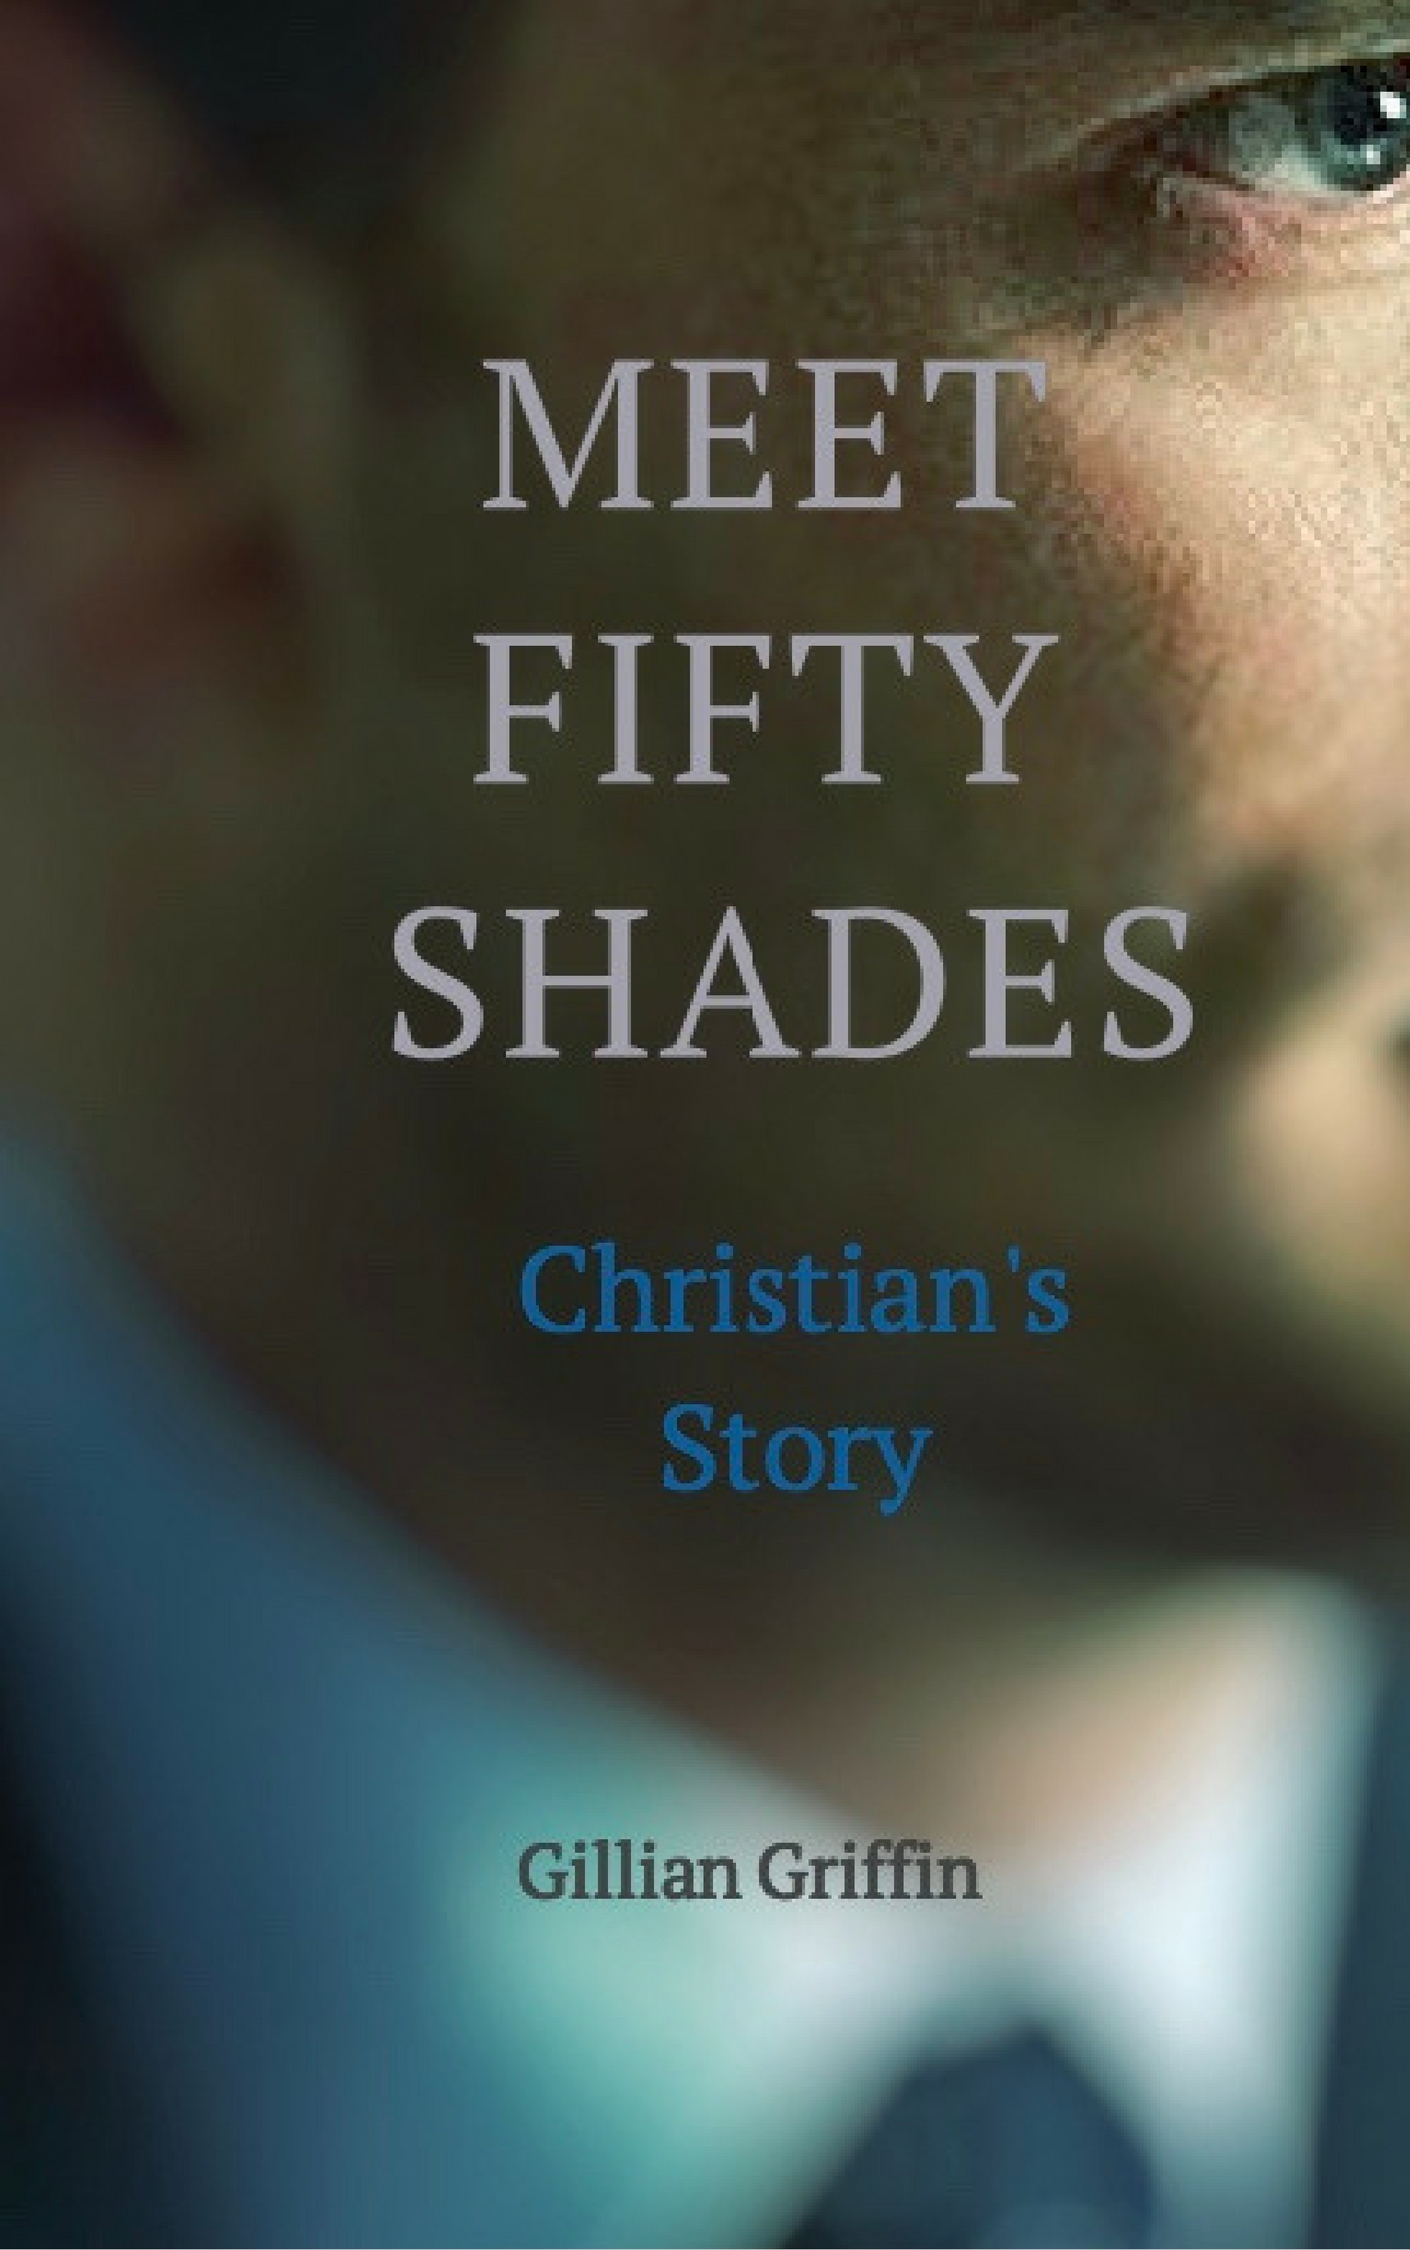 Meet Fifty Shades